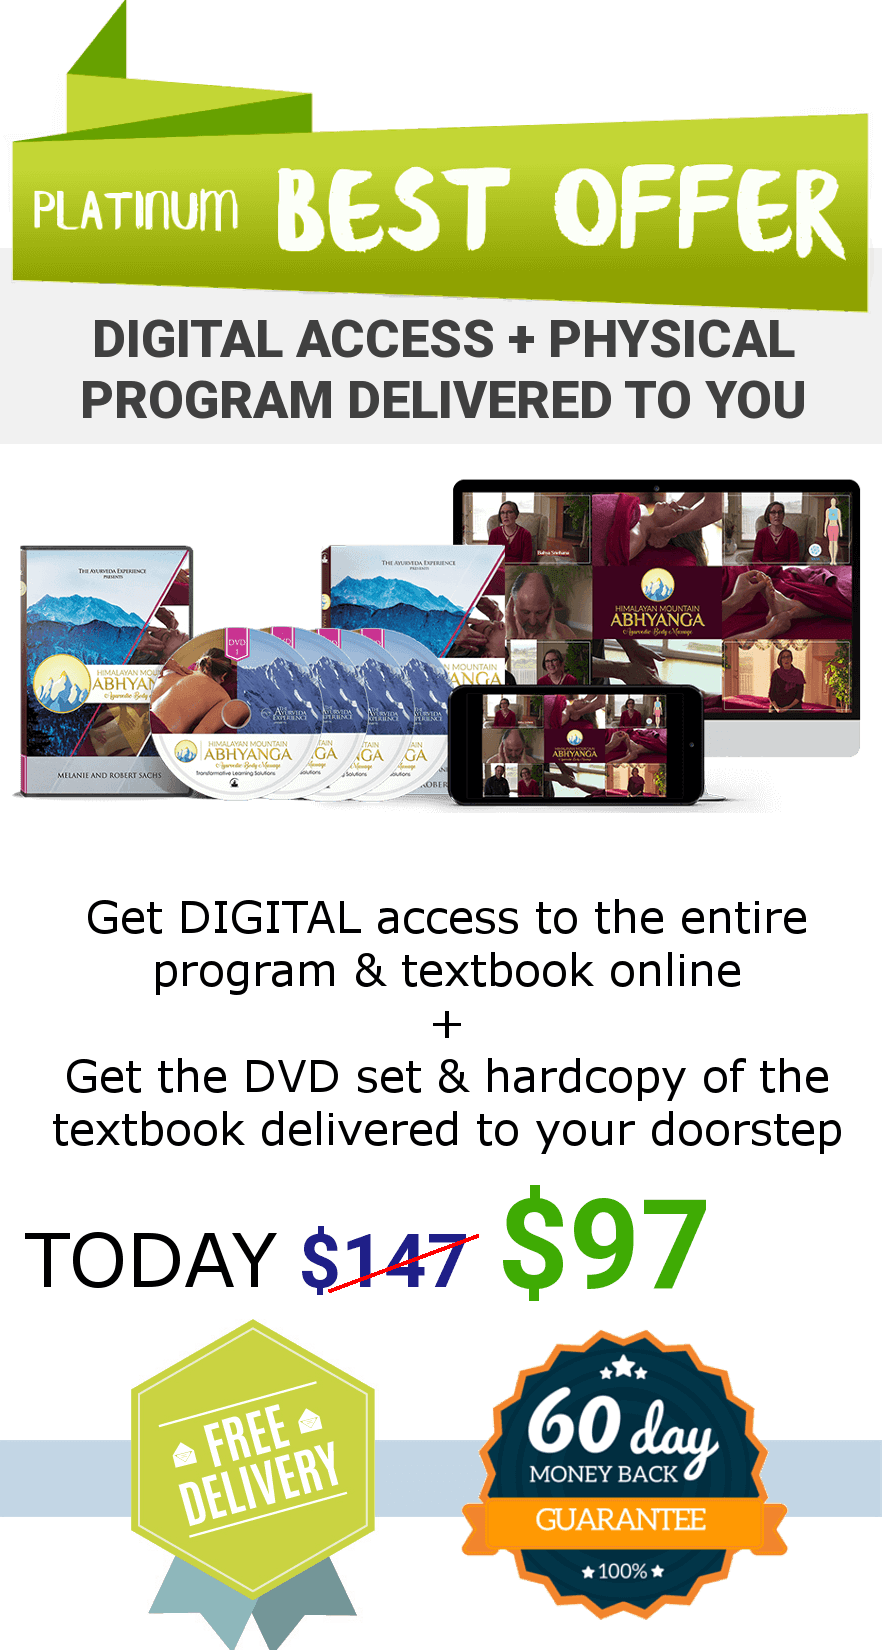 Take advantage of the Platinum offer now!